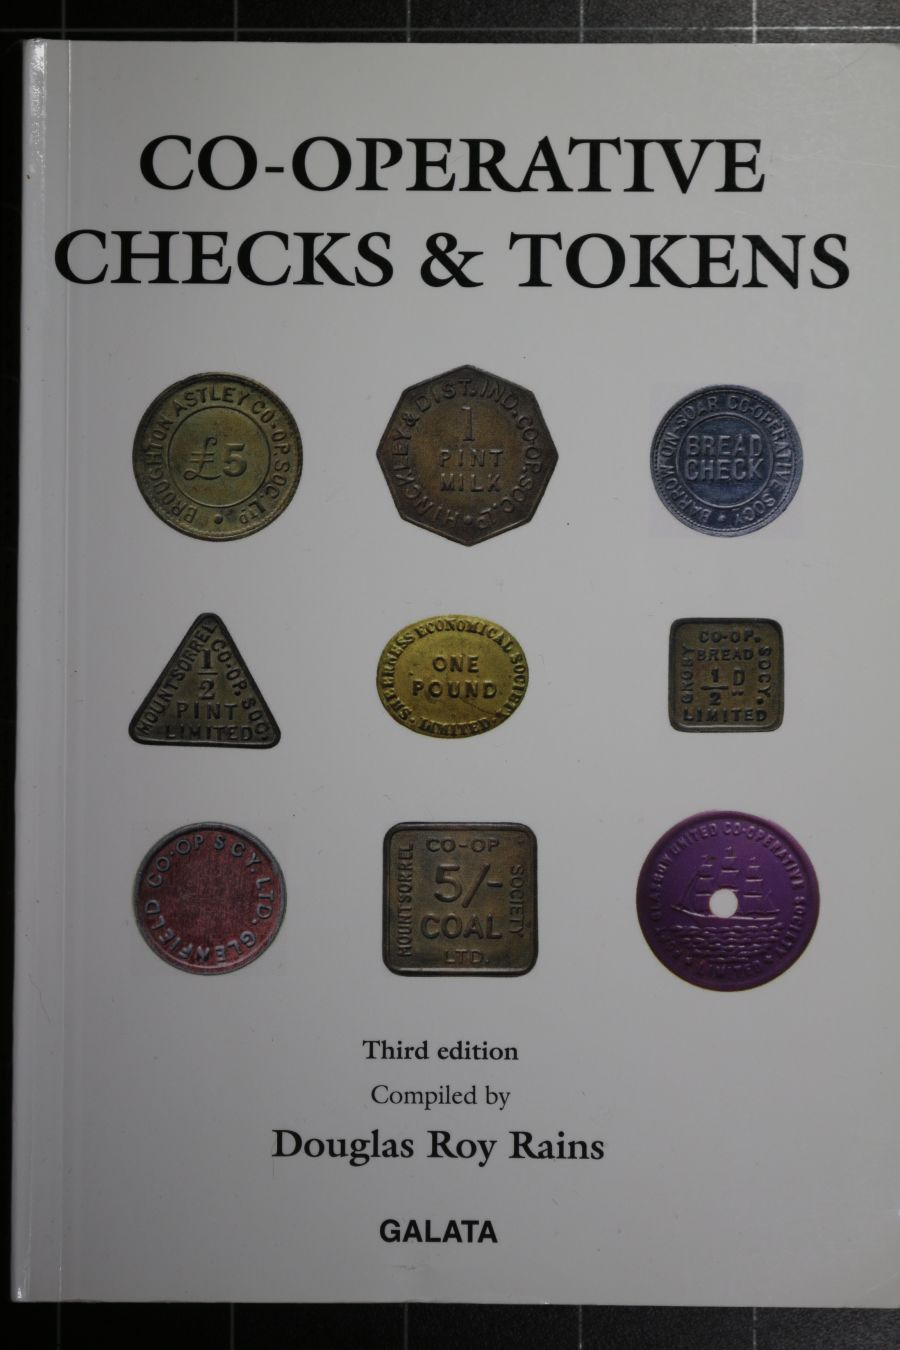 Co-Operative checks & tokens, Third edition, by Douglas Roy Rains, with annotations by the late Michael Sedgwick